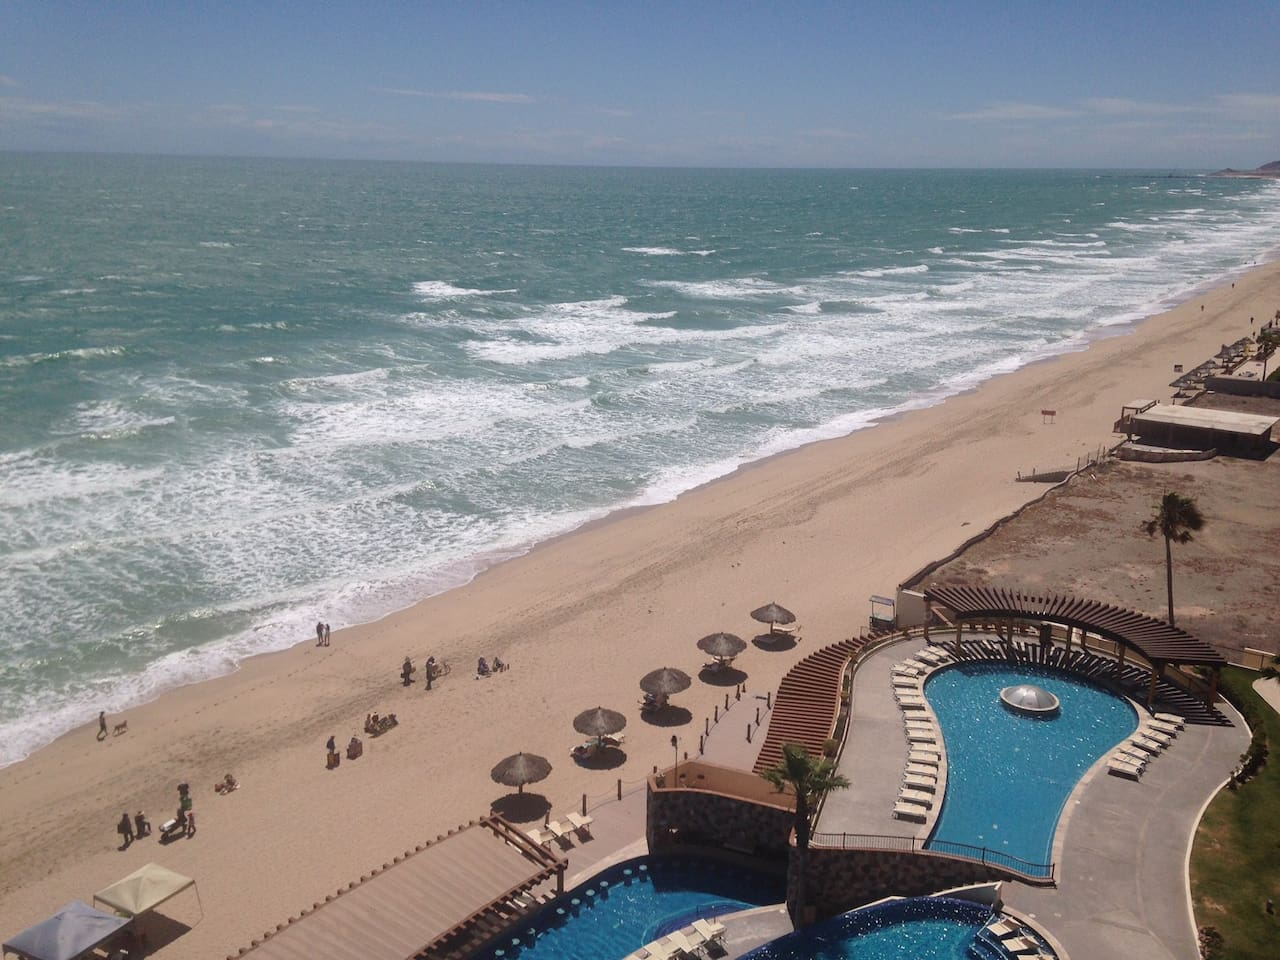 Ocean view from balcony, includes one of the 3 pools and 3 hot tubs.